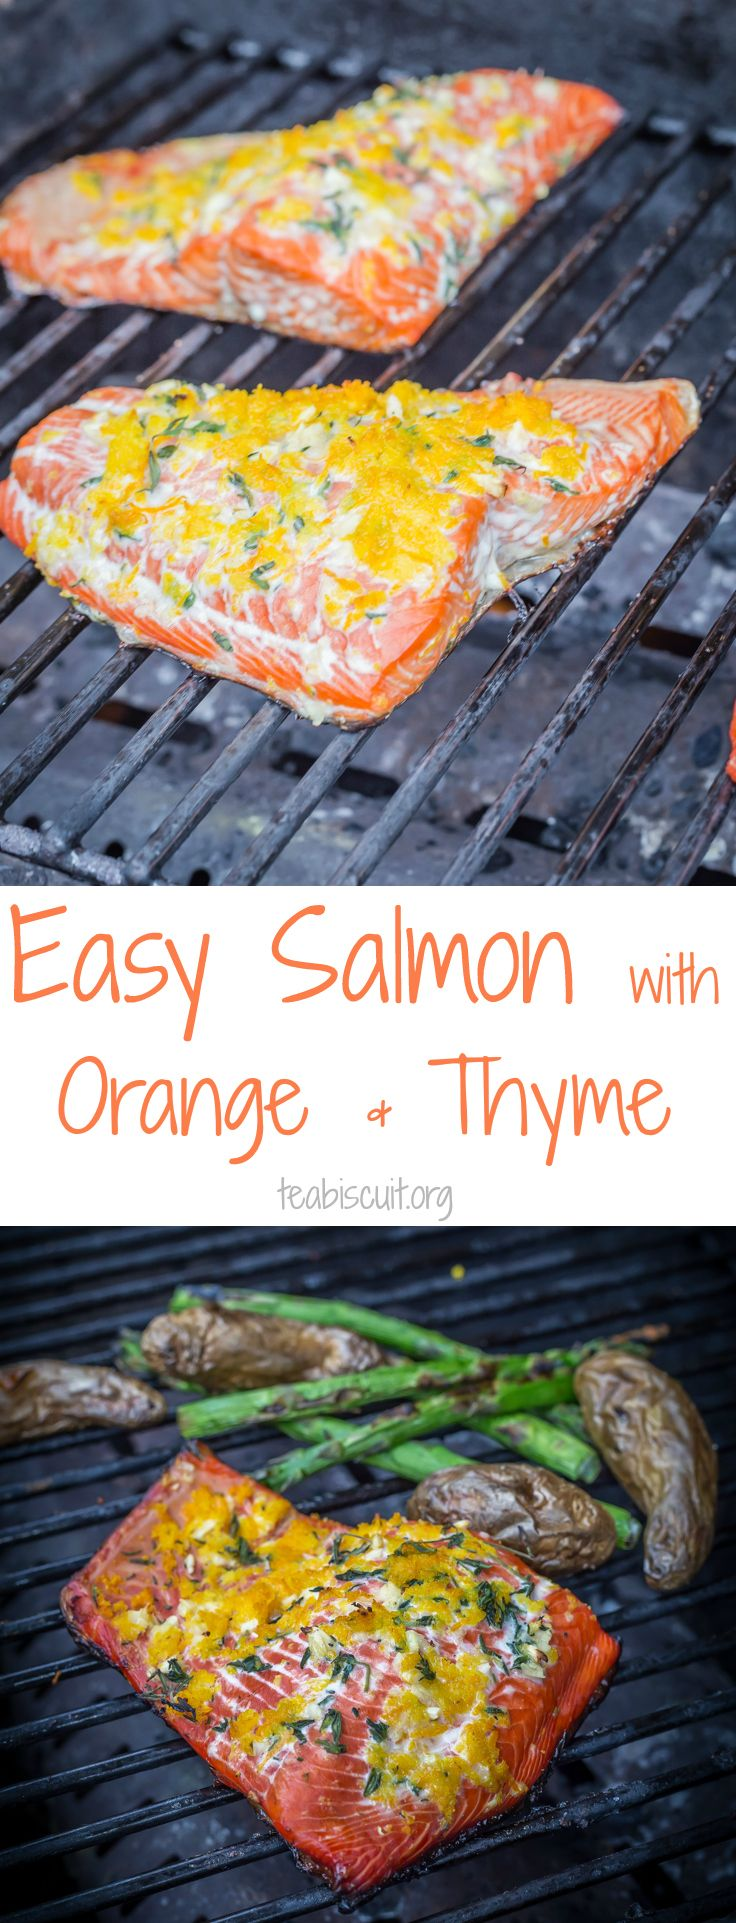 An easy grilled Salmon recipe with Orange and Thyme. Cook it in TEN minutes! Perfect for grilling out,Low Carb,Paleo,Gluten Free and Low Calorie | teabiscuit.org